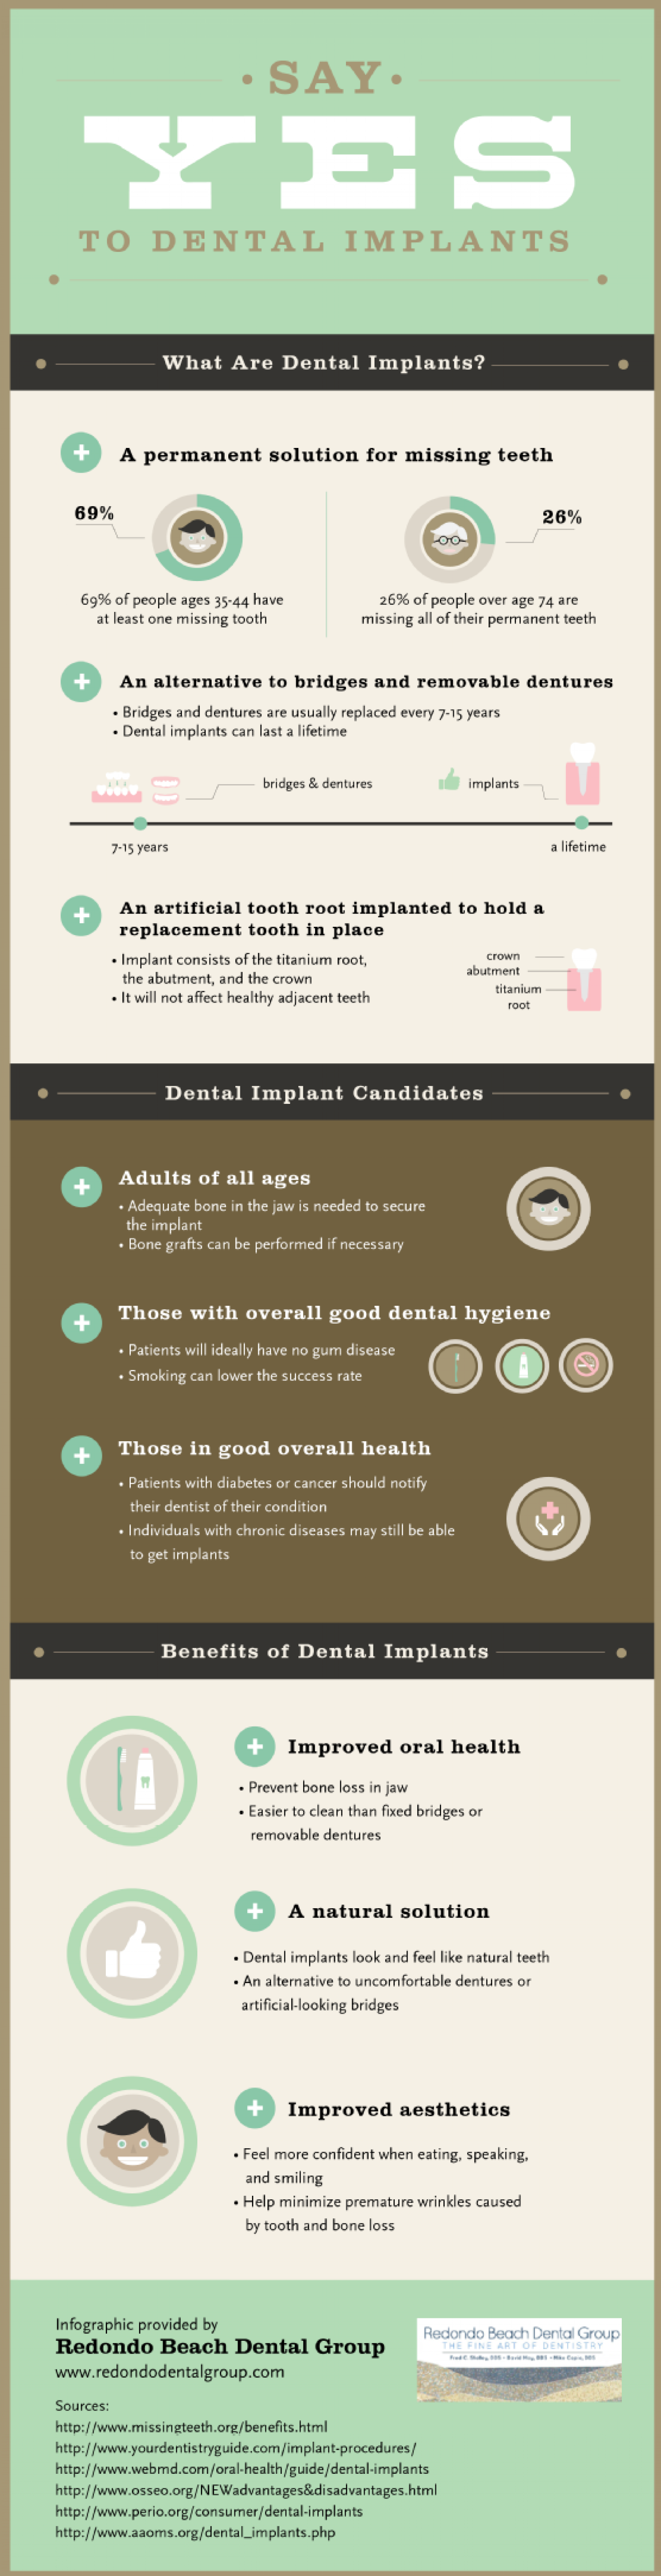 Say Yes to Dental Implants! Infographic